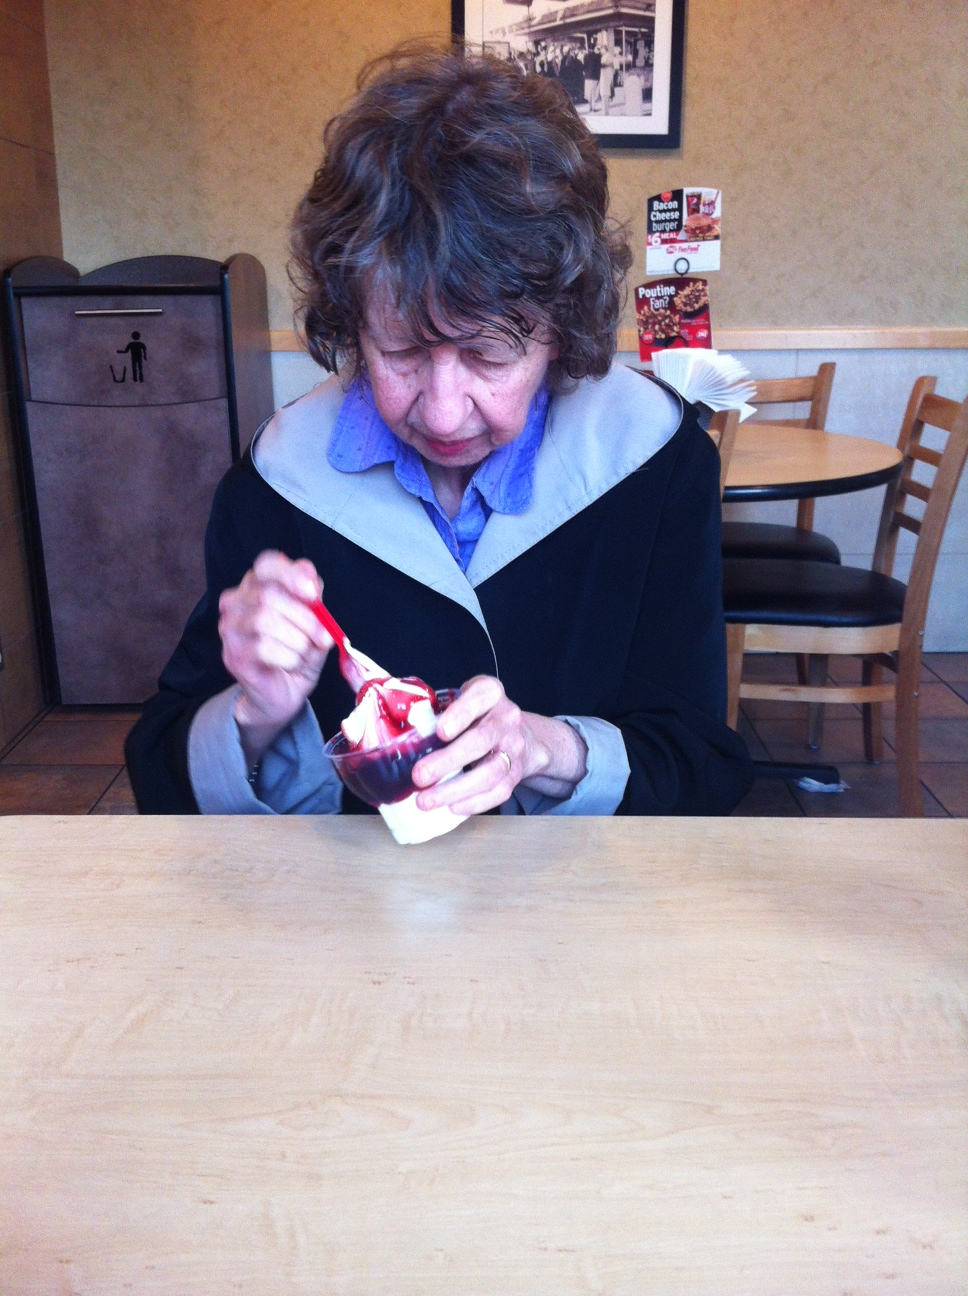 joanne cave's mother enjoying an ice cream sundae with her daughter, on a rare afternoon out of long-term care.